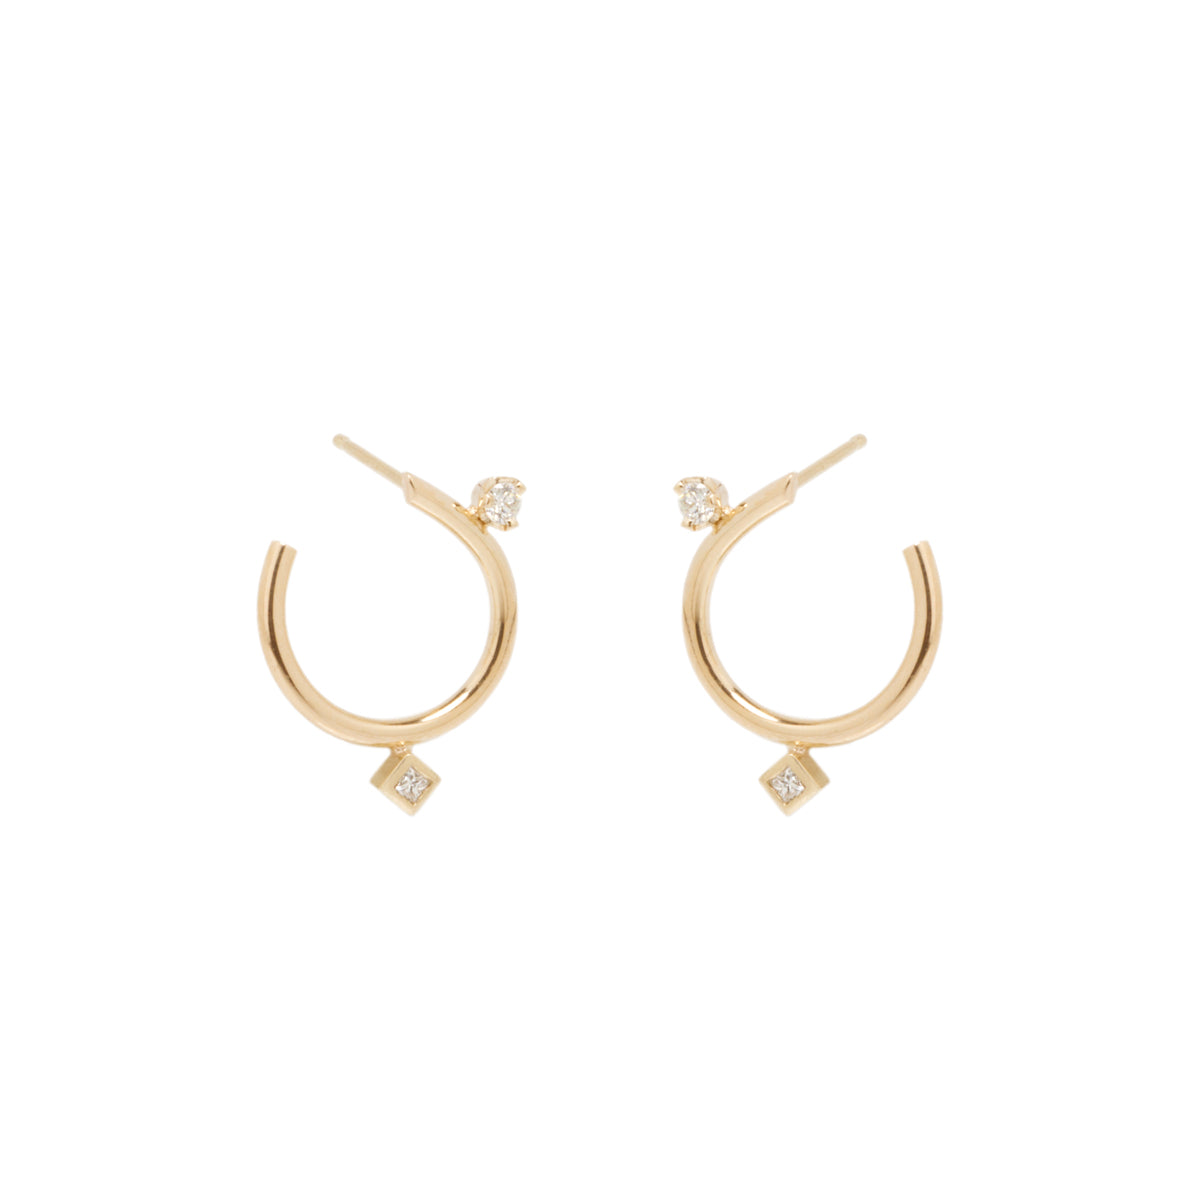 Zoë Chicco 14k Front-to-Back Diamond Hoop Earrings gmYBFnnkhc